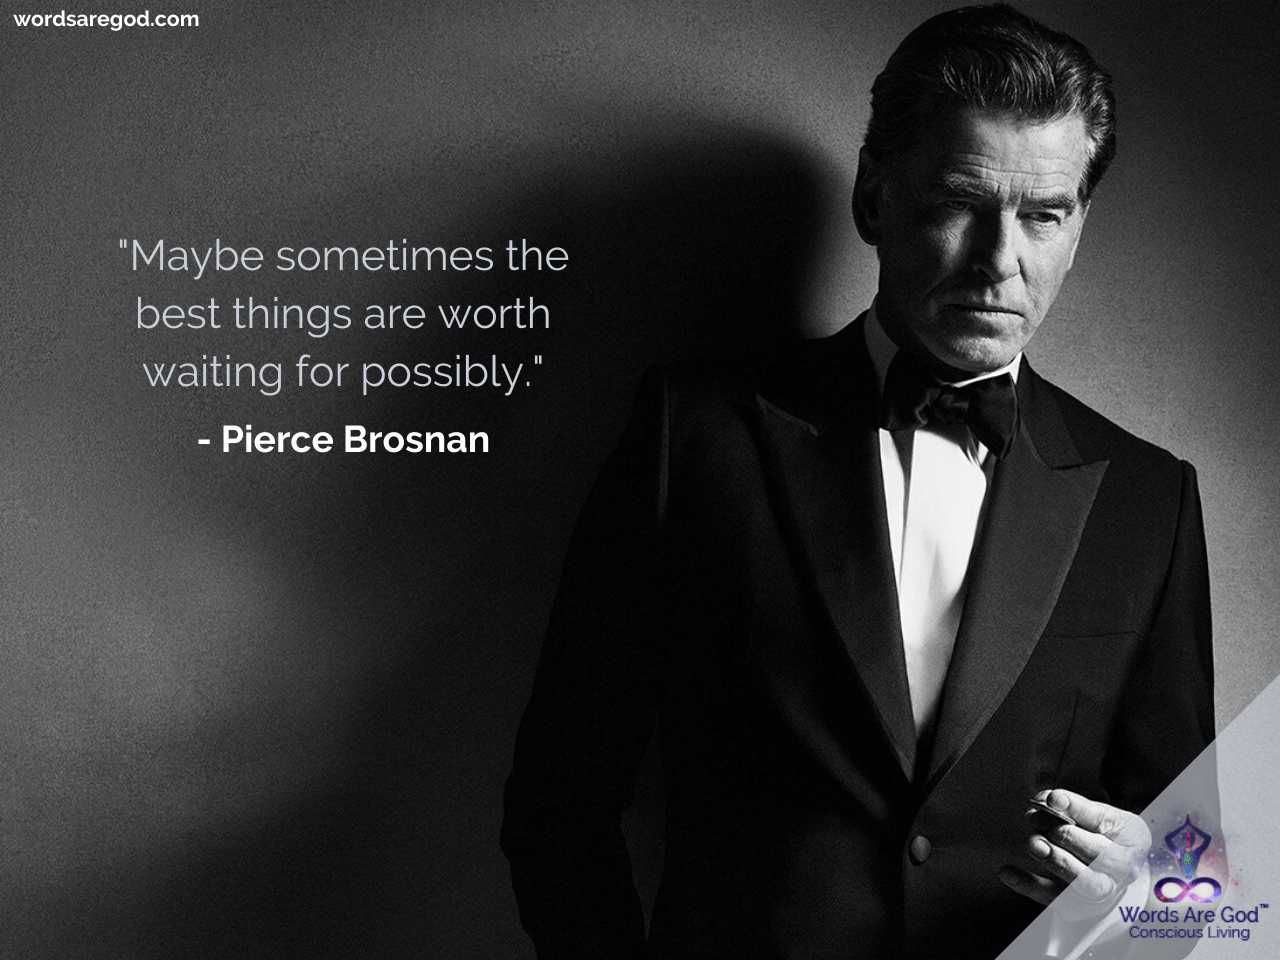 Pierce Brosnan Inspirational Quotes by Pierce Brosnan